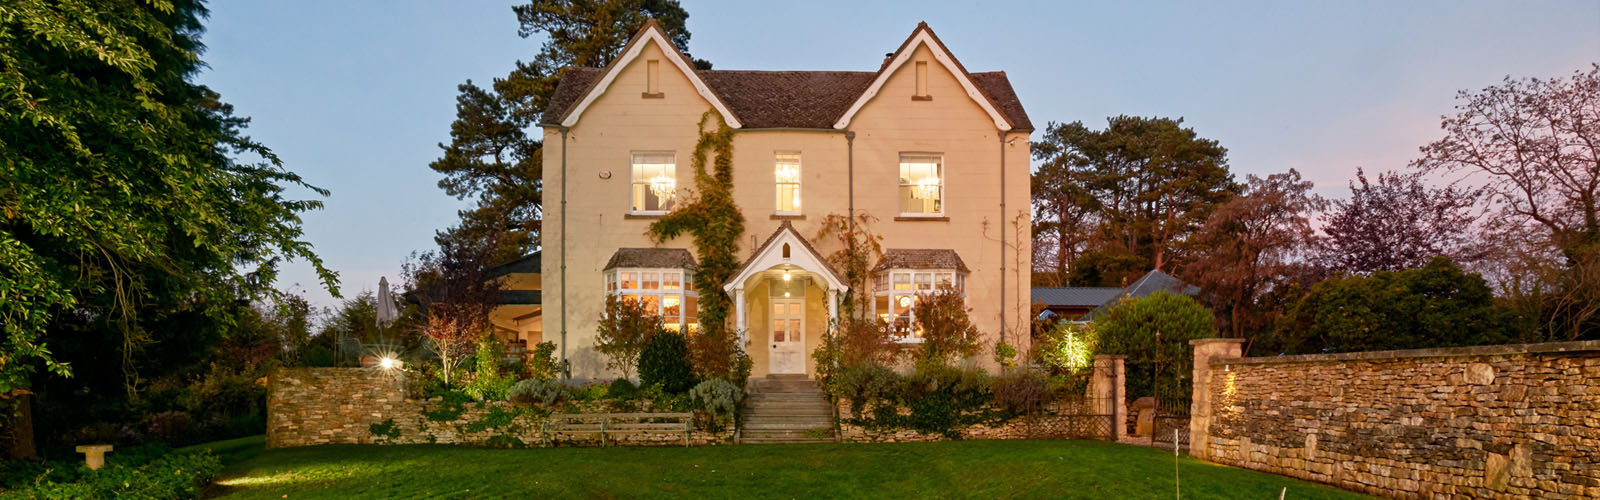 Large Holiday Cottage in an extraordinary location.